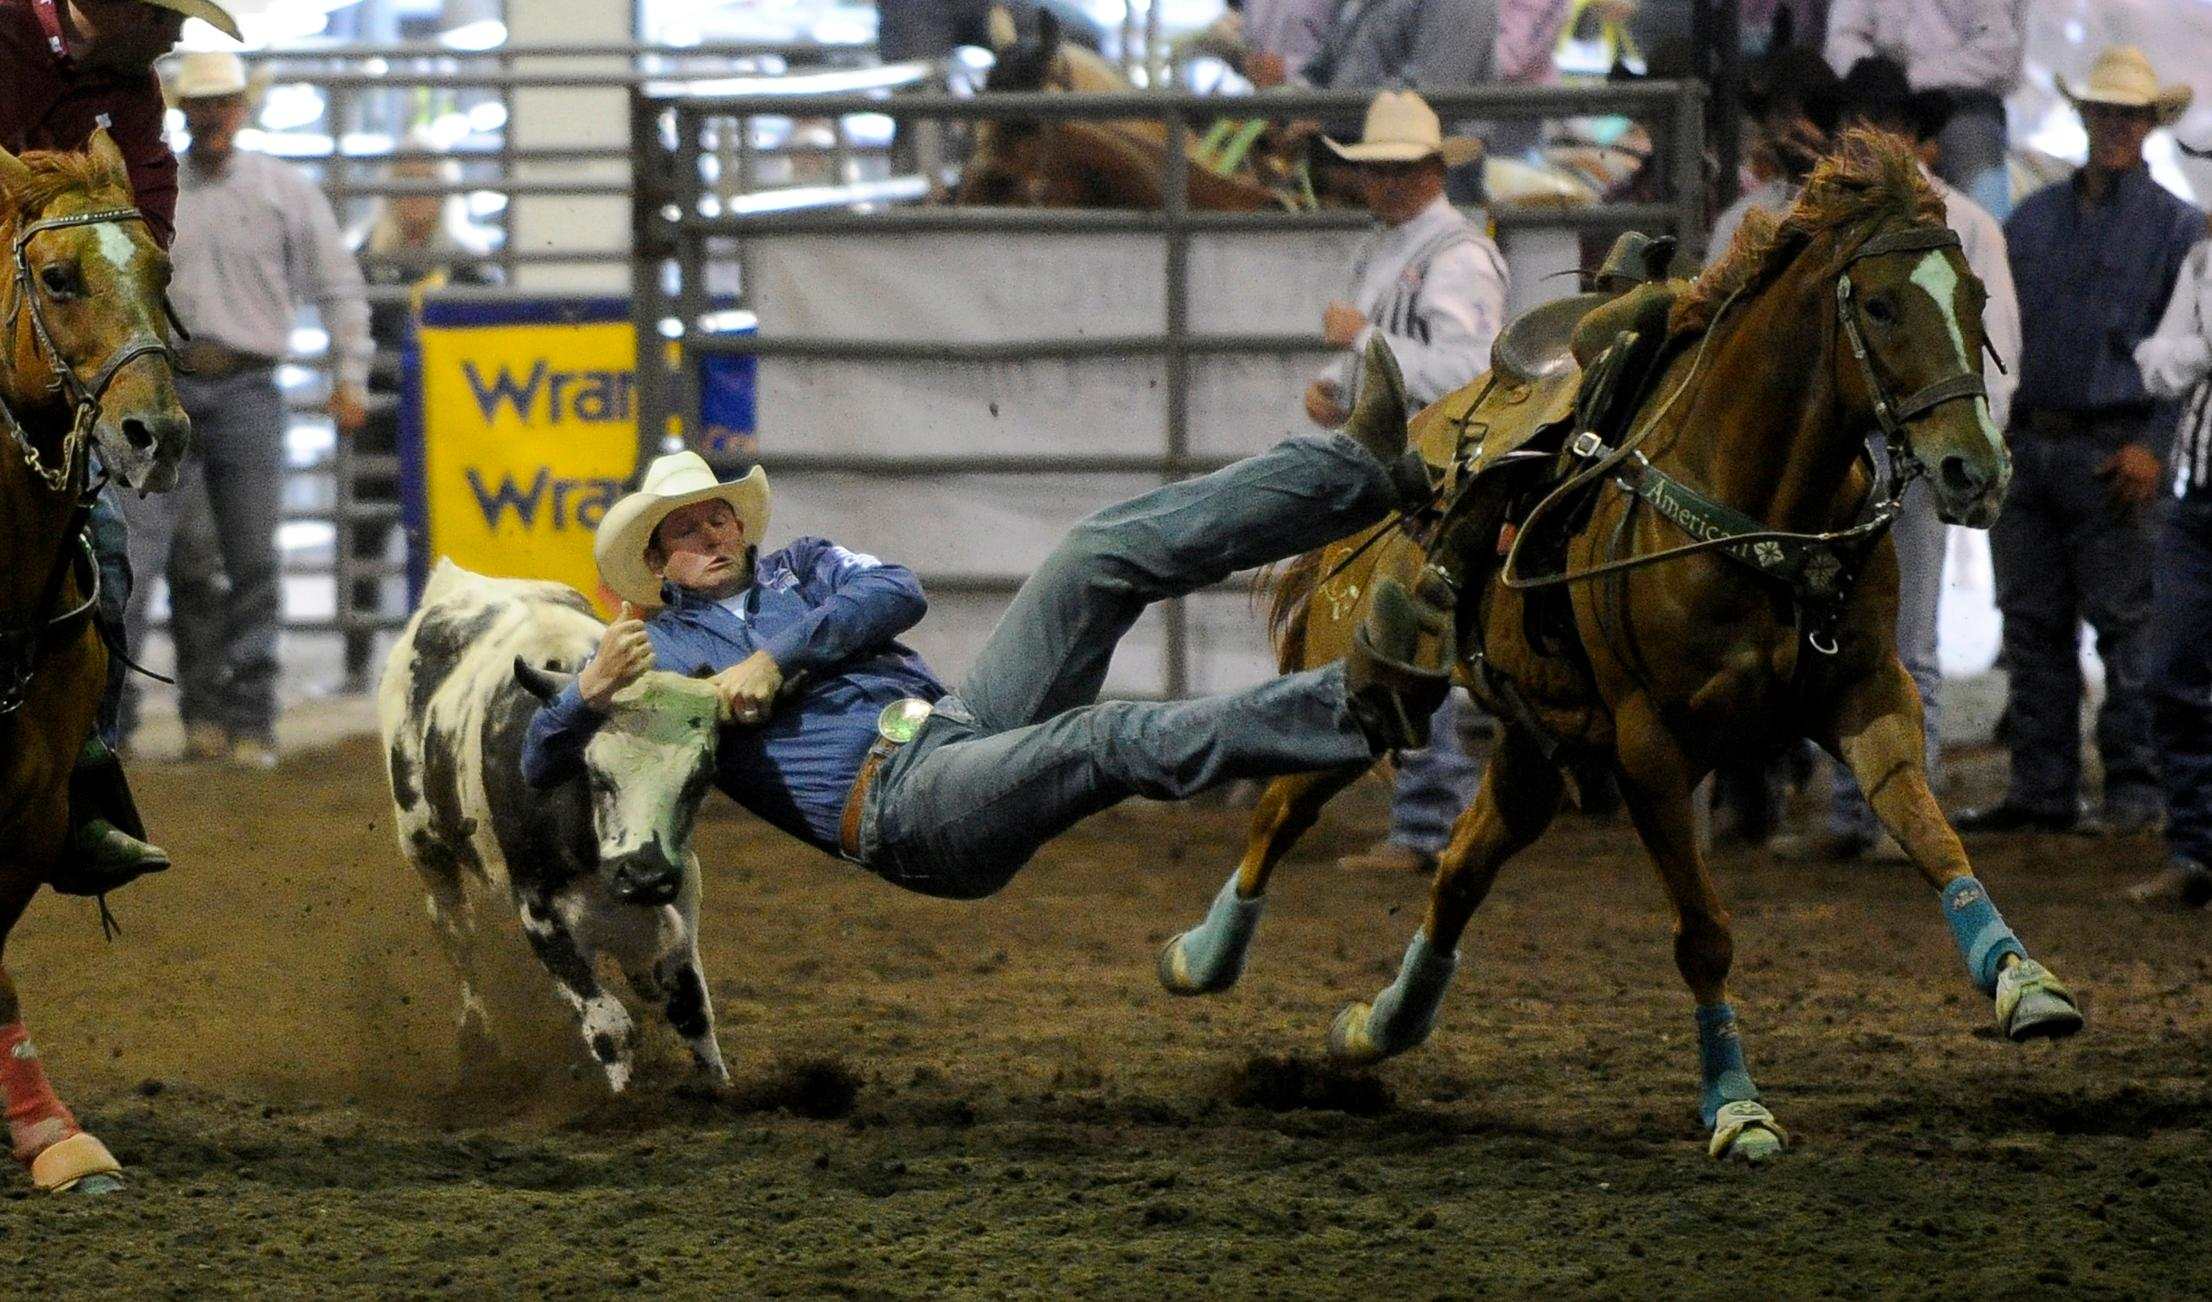 Andy Atkinson / Mail TribuneBlake Knowles from Heppner leads after the first night of steer wrestling at the Jackson County Expo Thursday evening during the Wild Pro Rodeo.